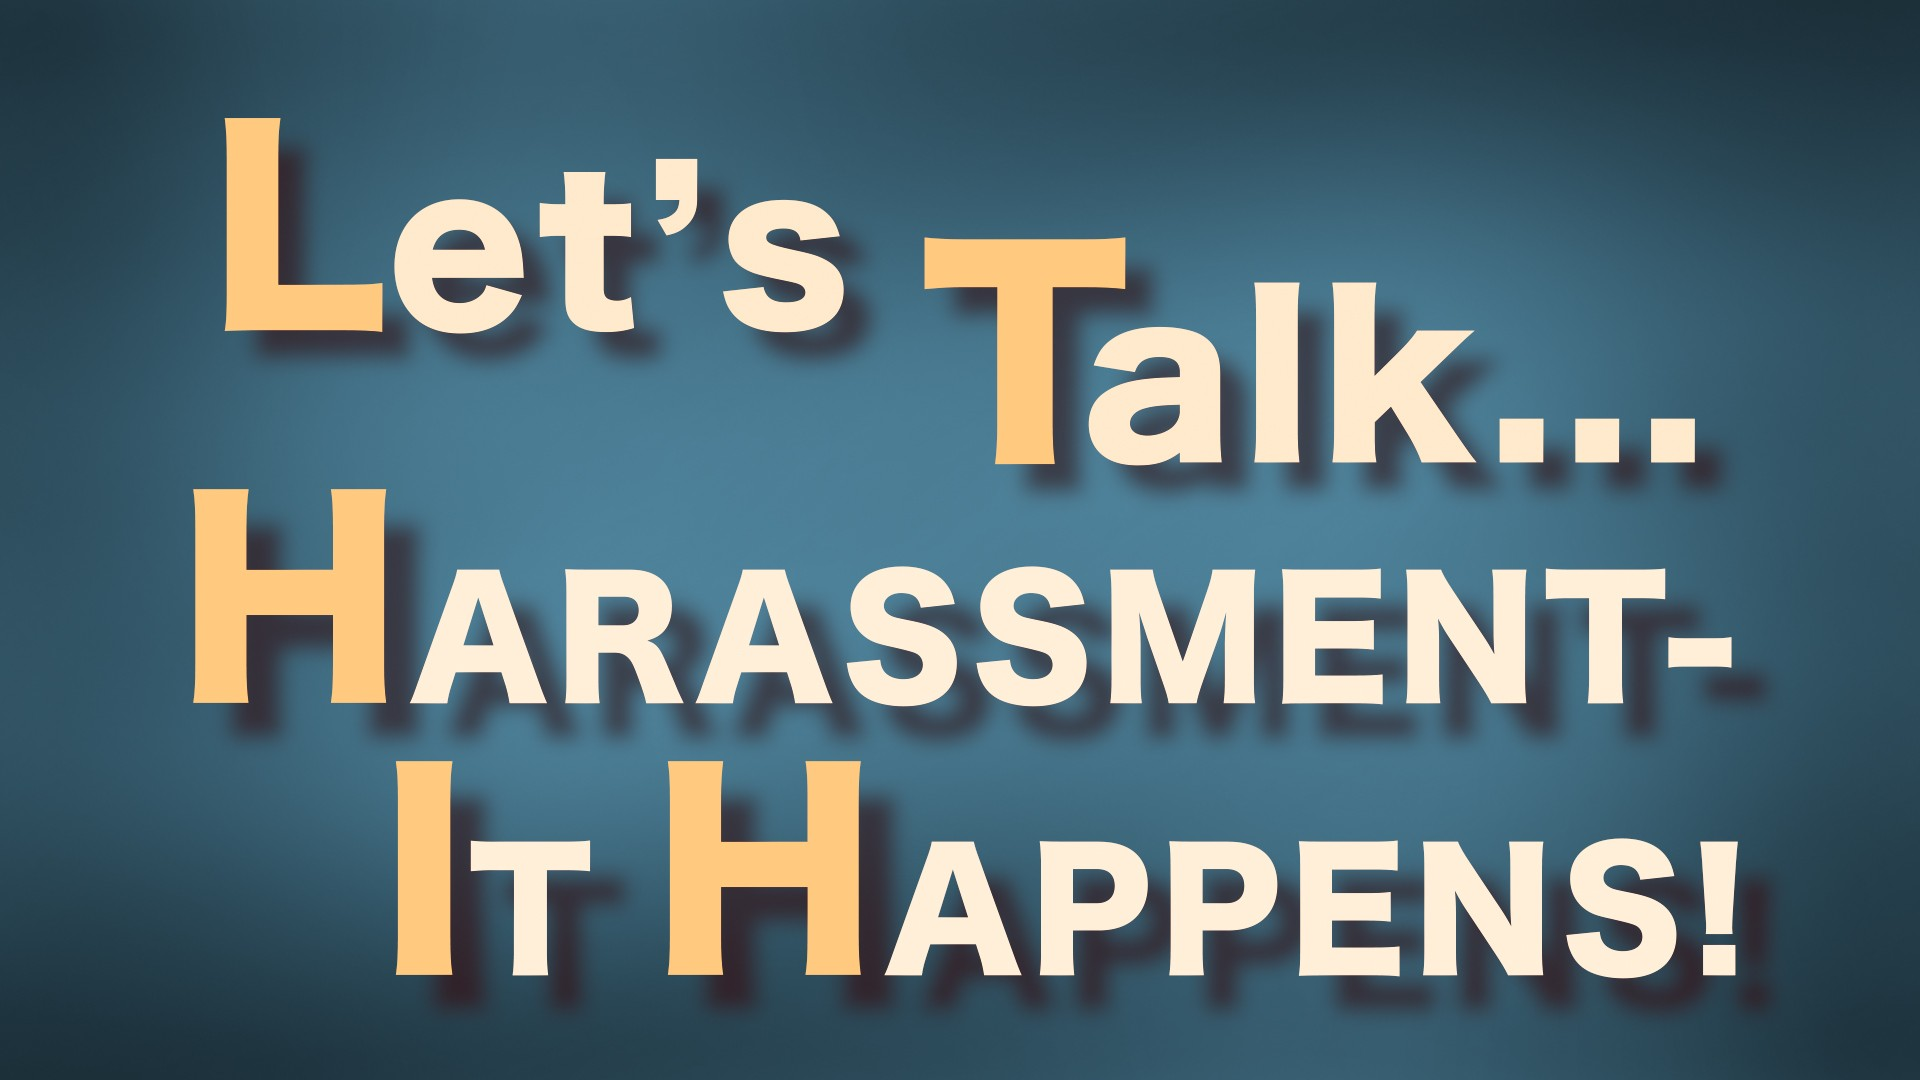 Let's talk-- harassment, it happens!